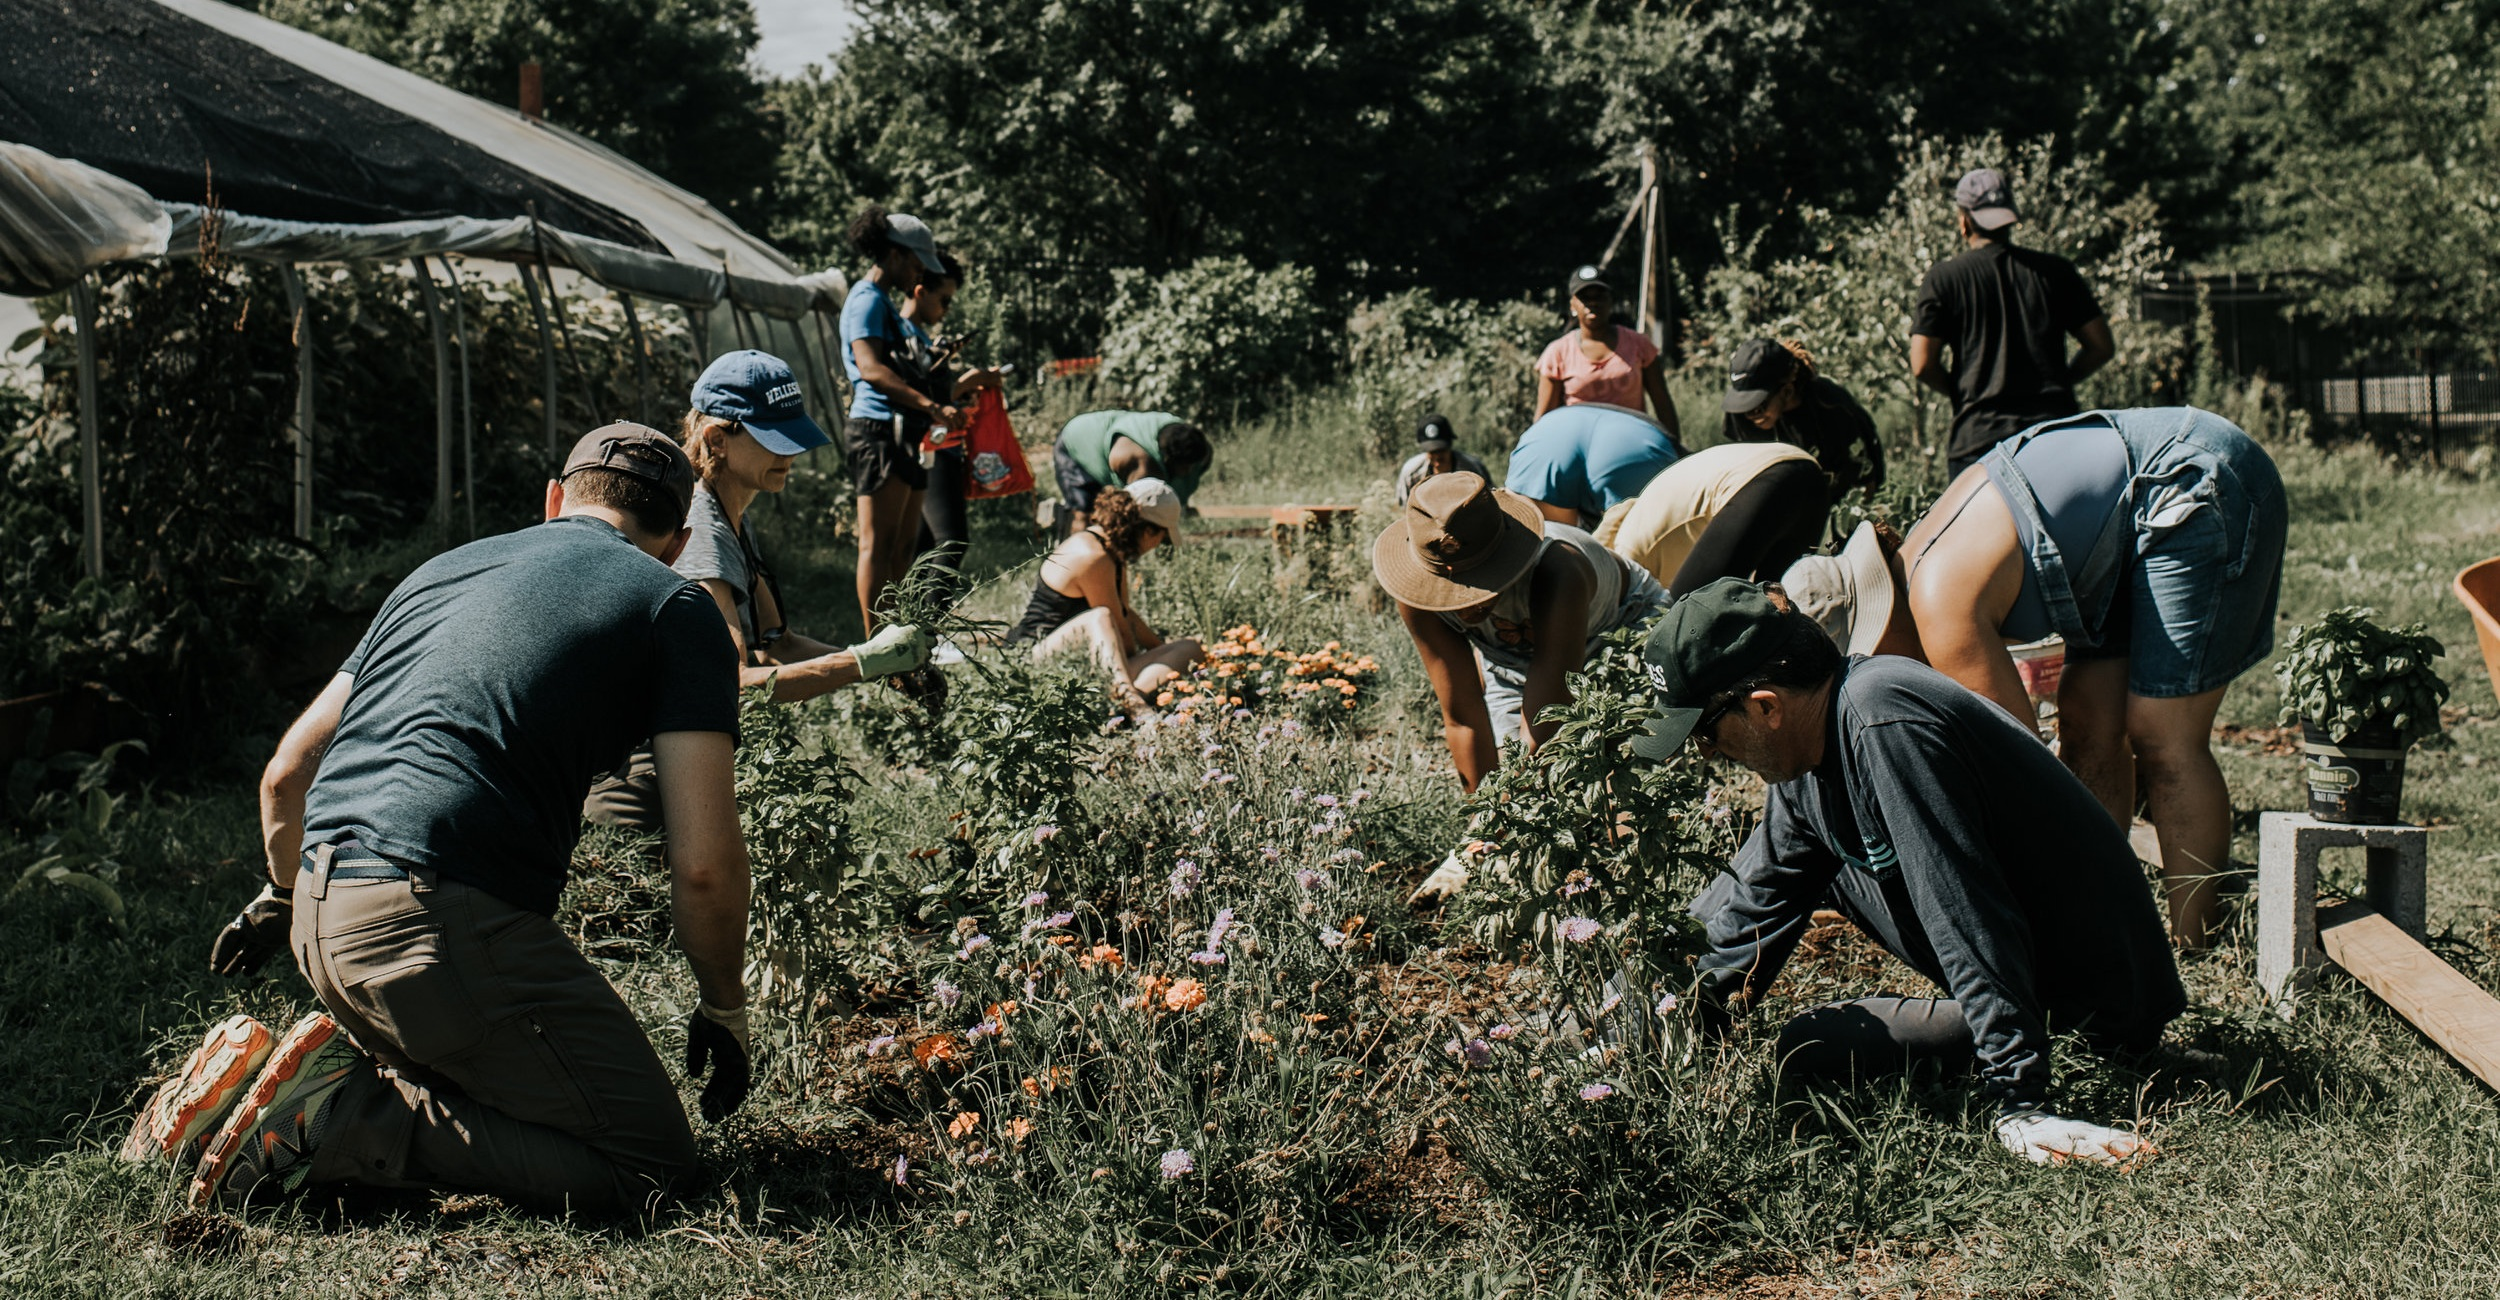 Let's Grow Together - There are 300 community gardens and 50 urban farms in metro Atlanta. We help these spaces thrive.